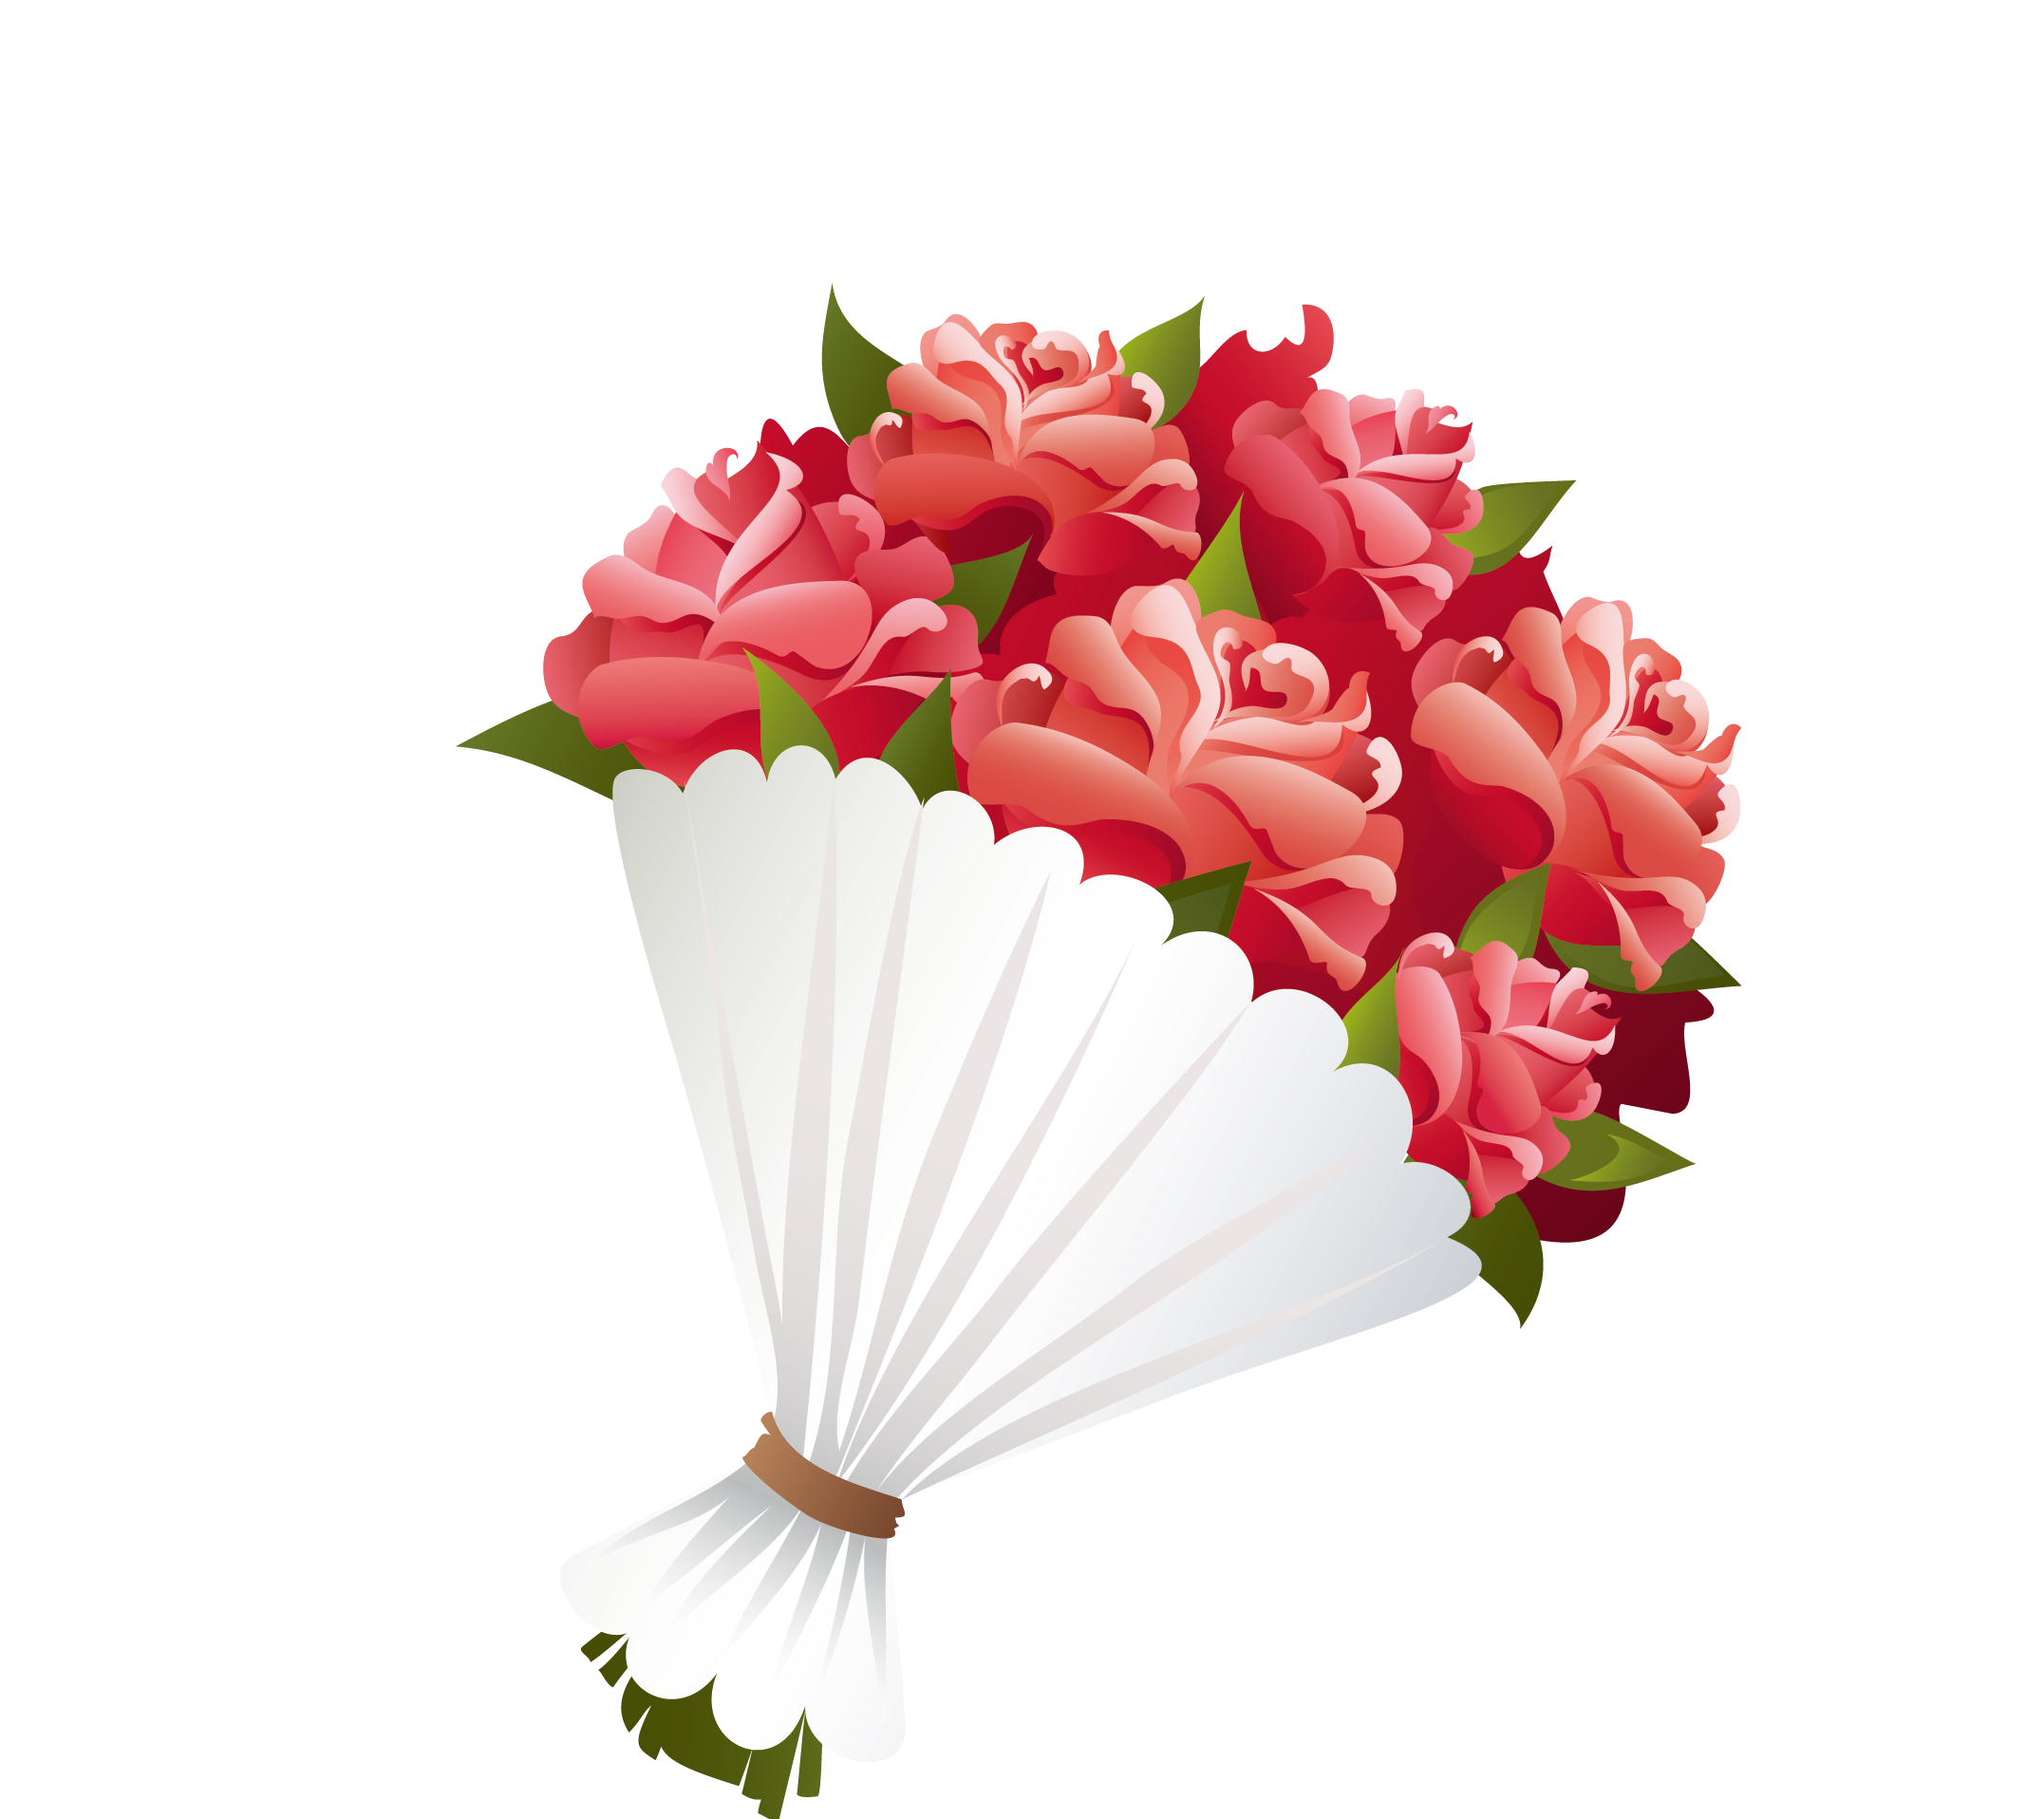 Clipart flower bouquet graphic library Flower bouquet Clip art - Cartoon red valentine rose 2153*1916 ... graphic library